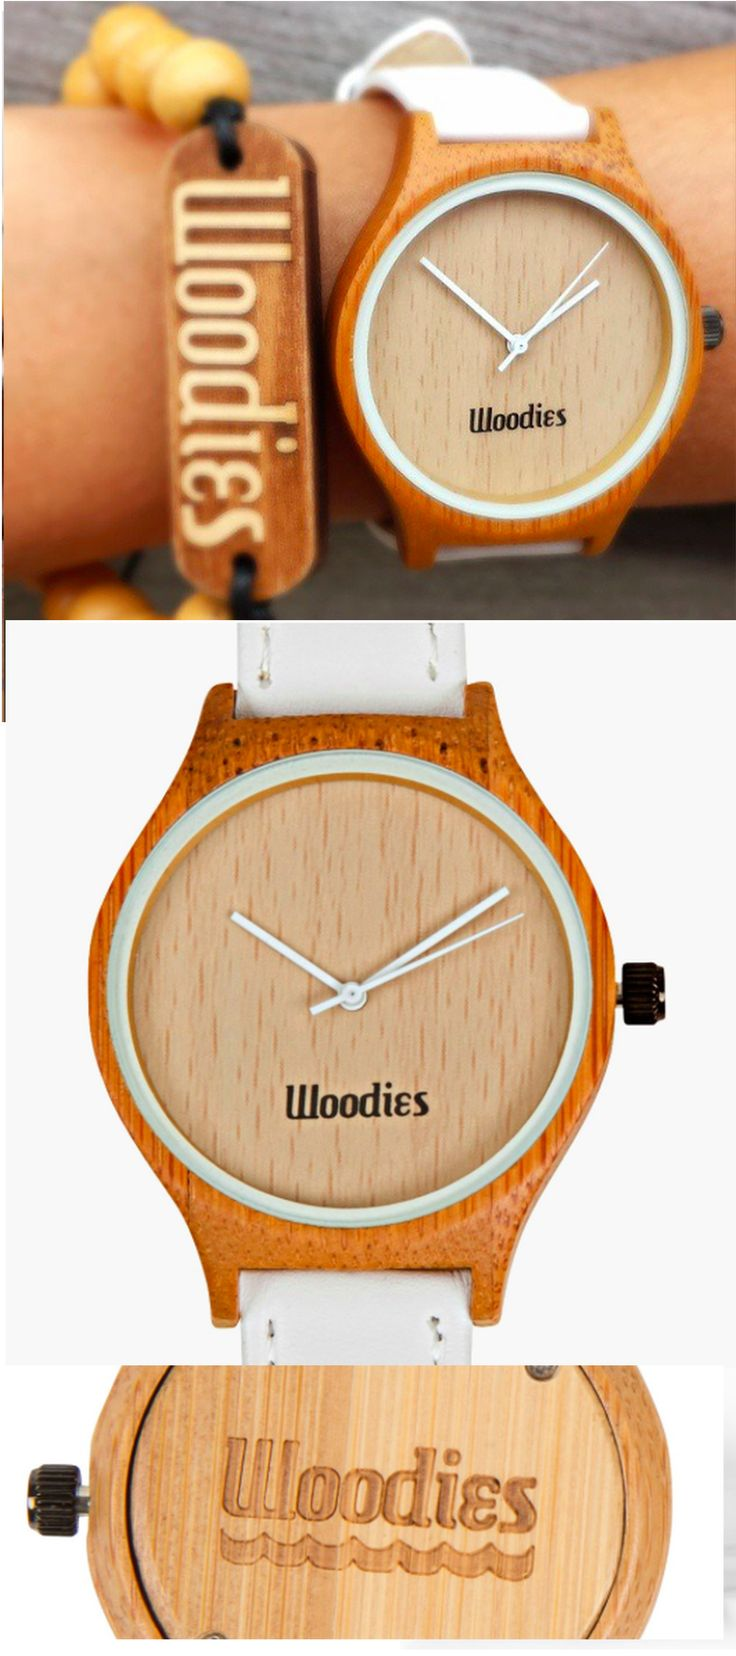 bird bamboo fulgente wood wooden for isla s watches leather men band watch wristwatches cowhide bobo genuine with products luxury